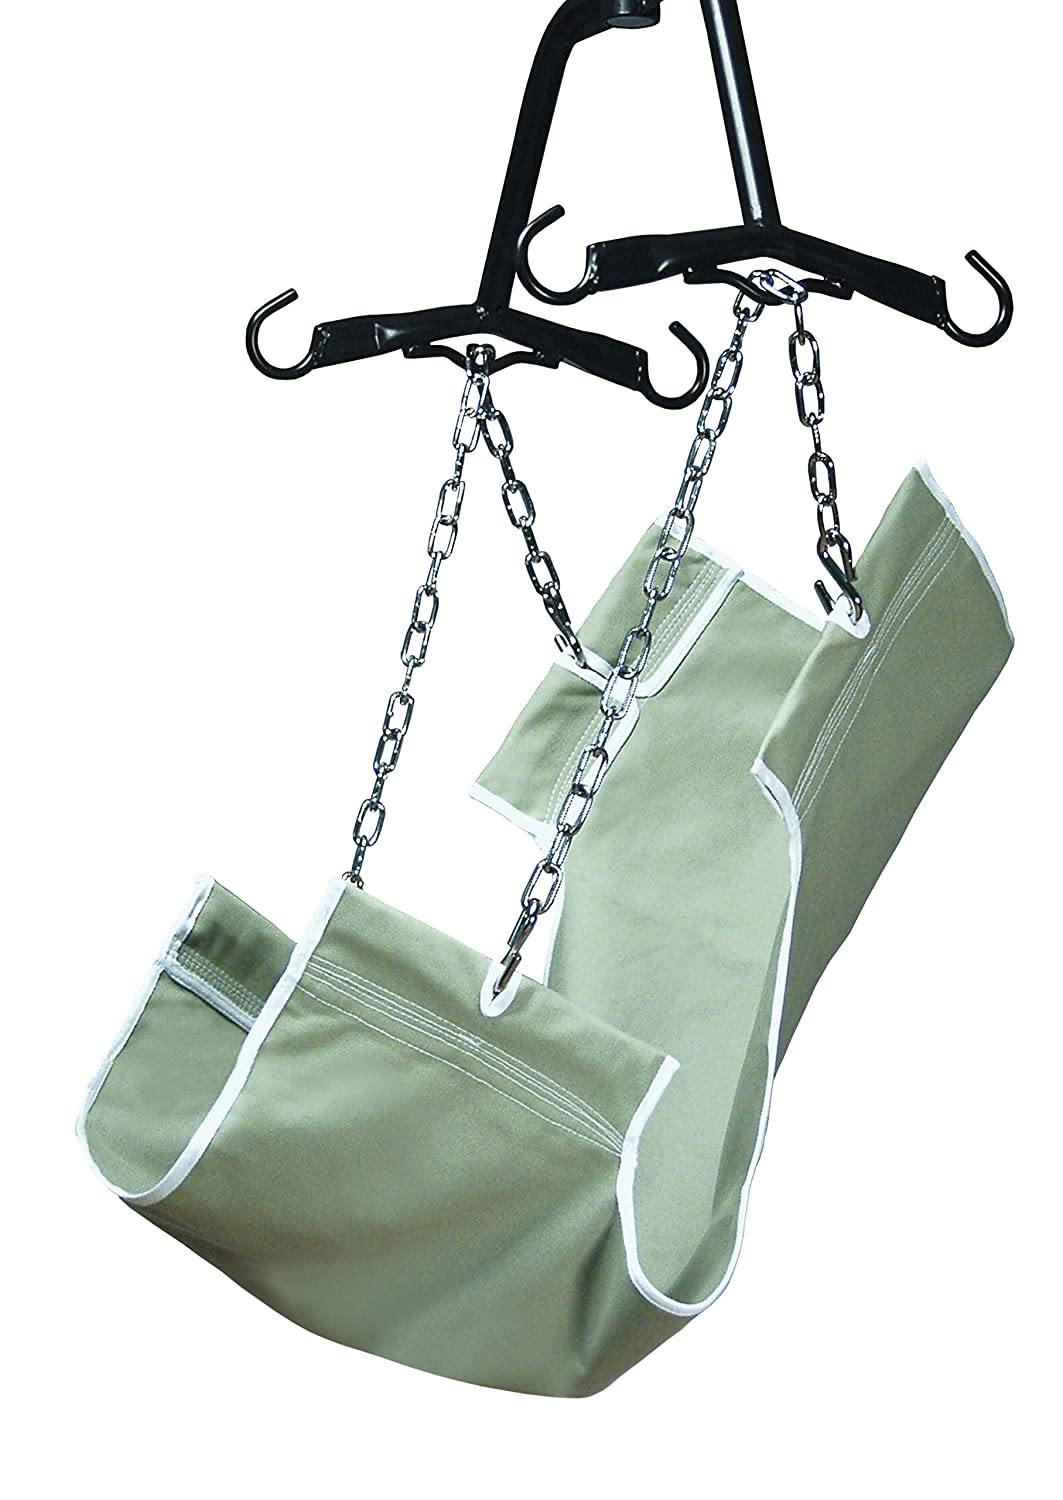 Lumex Standard 2-Point Sling for Patient Lifts, Canvas Fabric, One-Size, 220 Pounds, GF112-C-LC